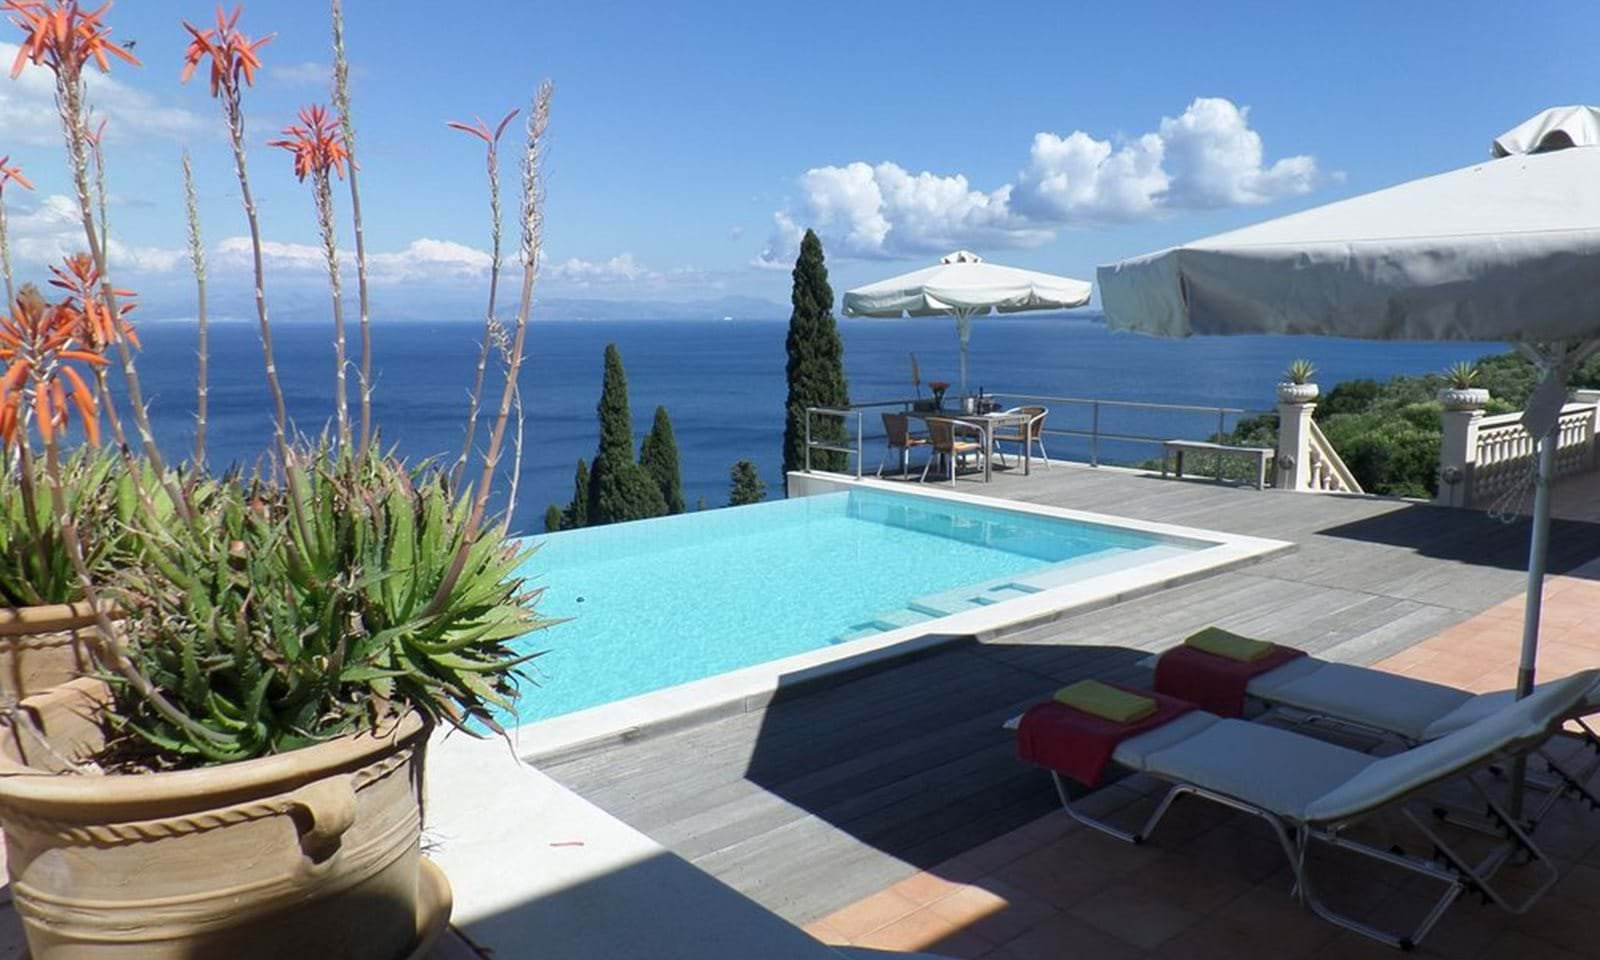 villa in south corfu for sale, south corfu villa, luxury corfu villa